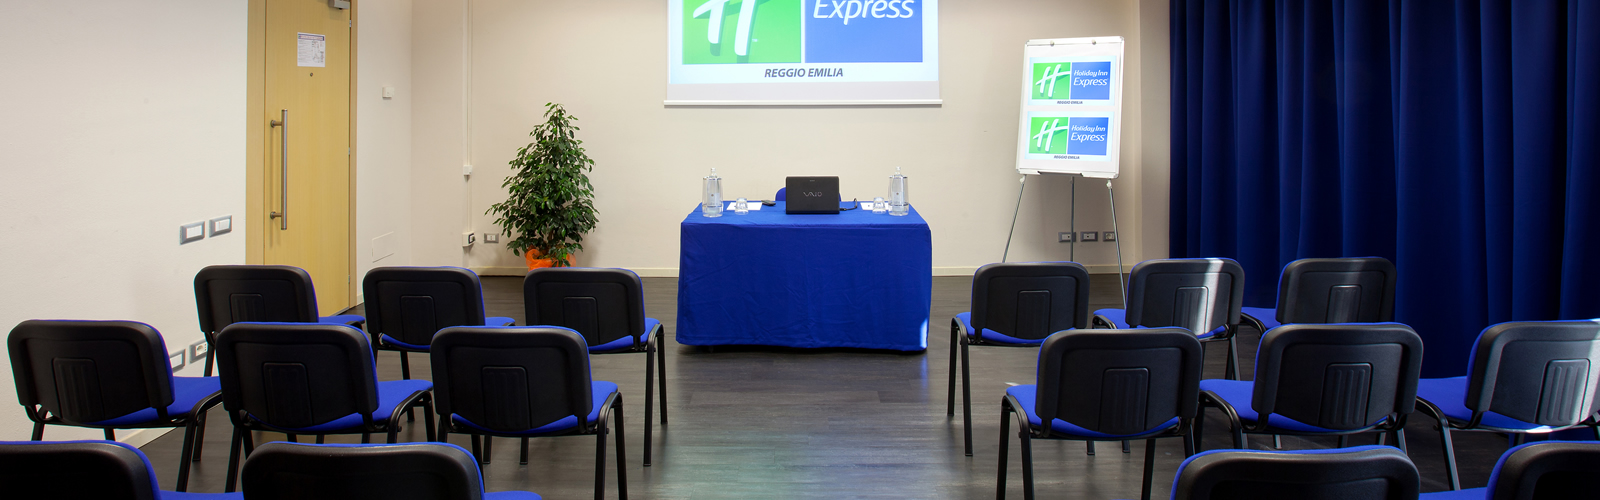 Hotel Holiday Inn Express Reggio Emilia